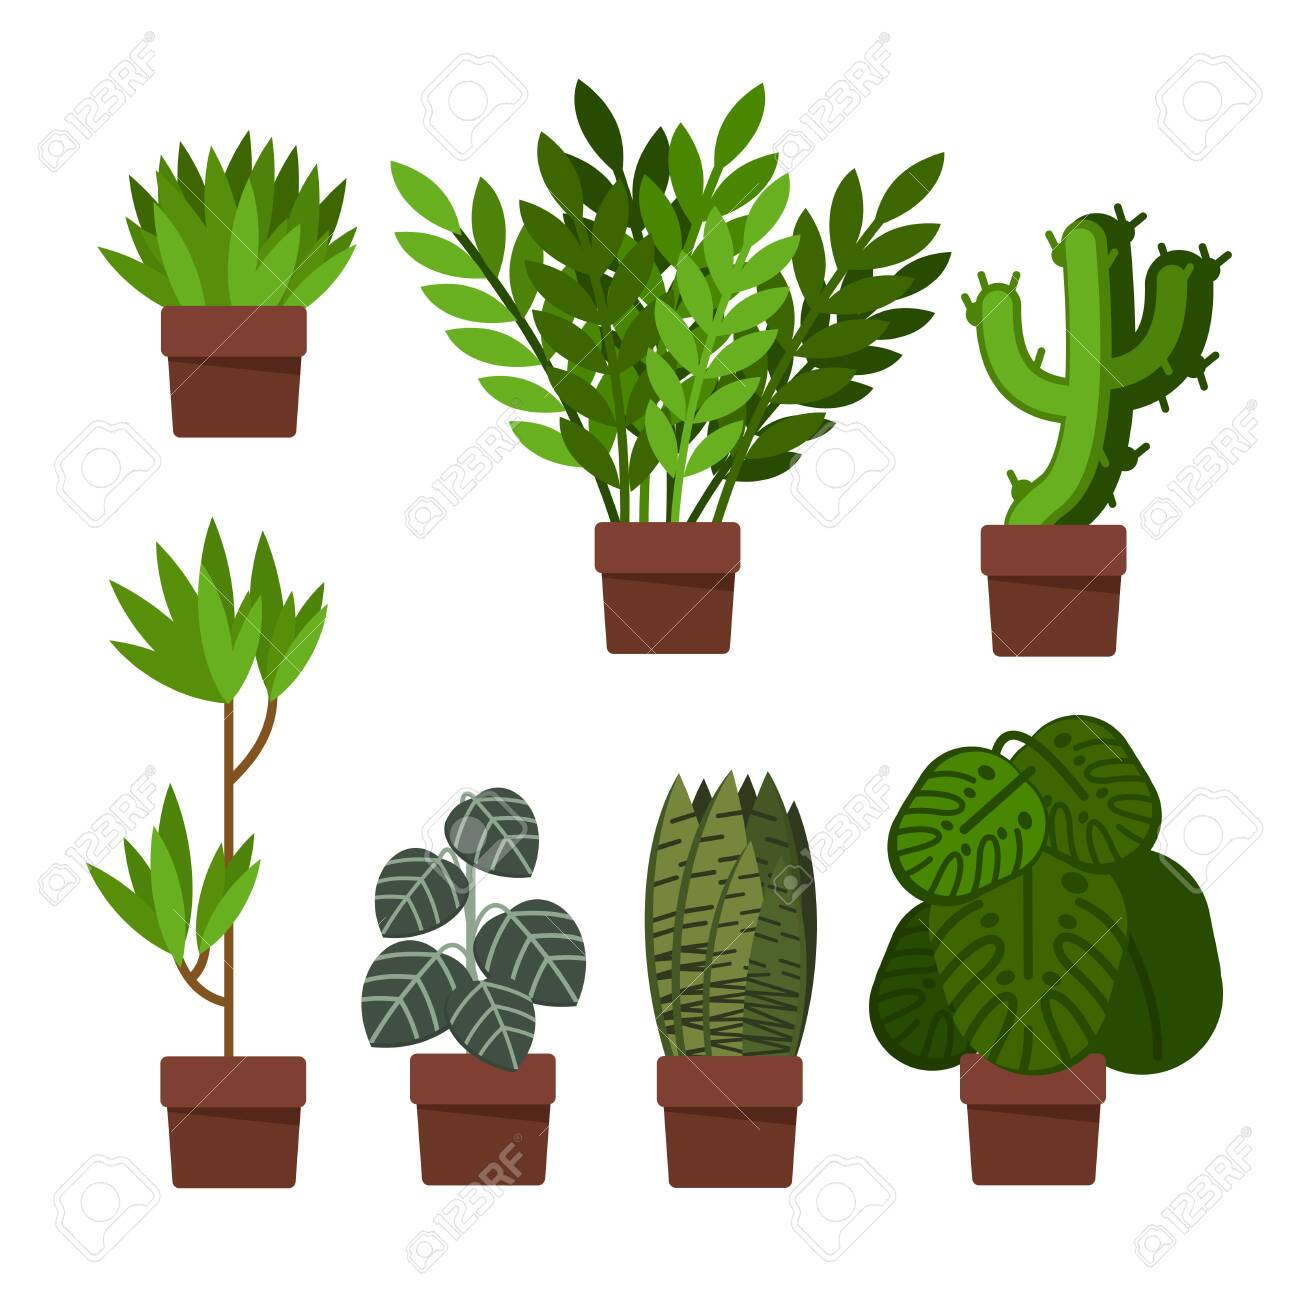 Cartoon Different Green Plants Pots Icons Set Flat Design Style Include of Cactus and Monstera. Vector illustration of Icon Plant - 151363509